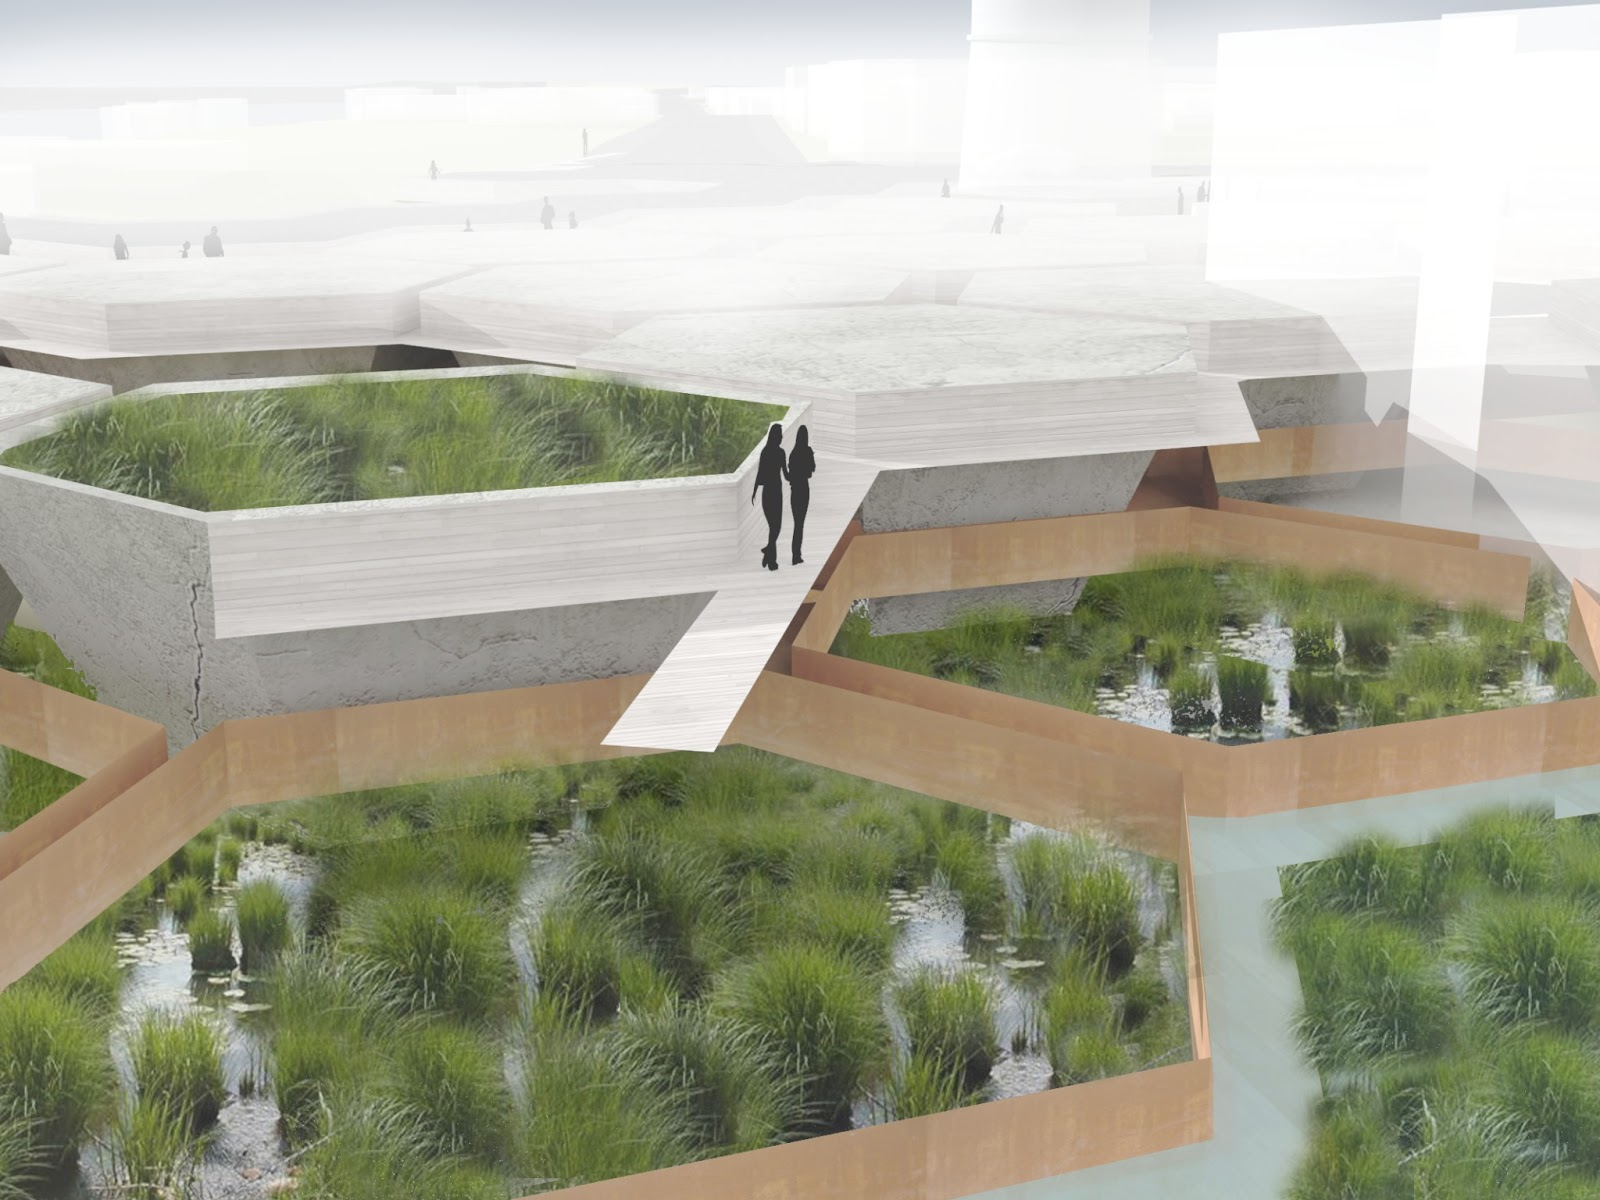 Awesome 3 PROJECTS, MASTER OF LANDSCAPE ARCHITECTURE, EMPHASIS IN ENVIRONMENTAL  PLANNING U0026 URBAN DESIGN _ UNIVERSITY OF CALIFORNIA BERKELEY 2011_2013, ... Pictures